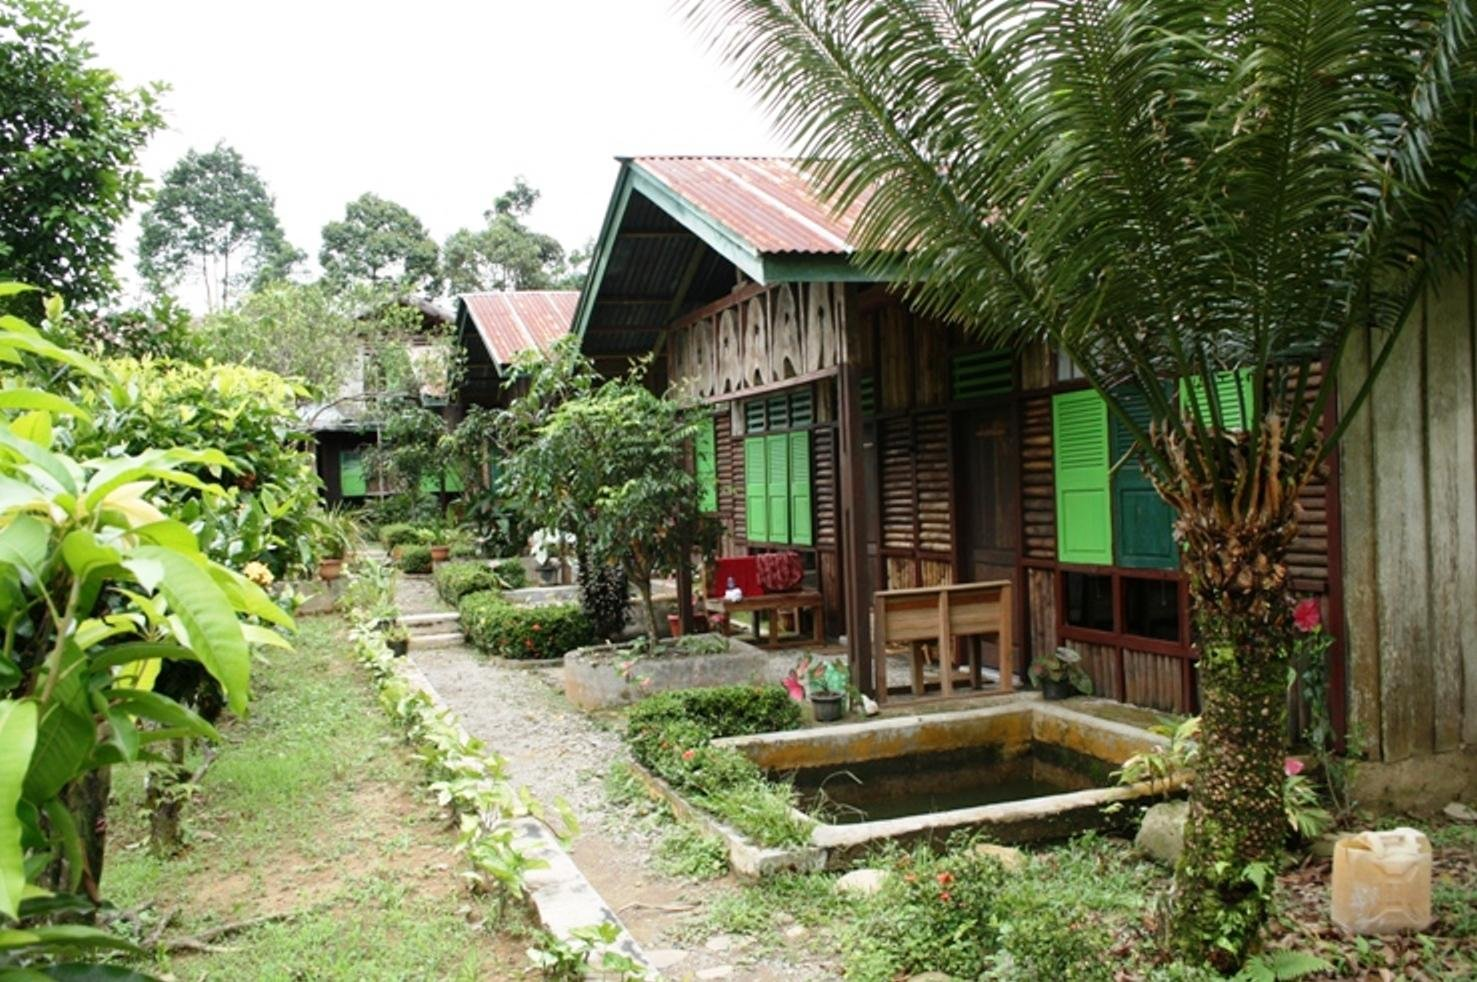 Black tiger lodge Tangkahan